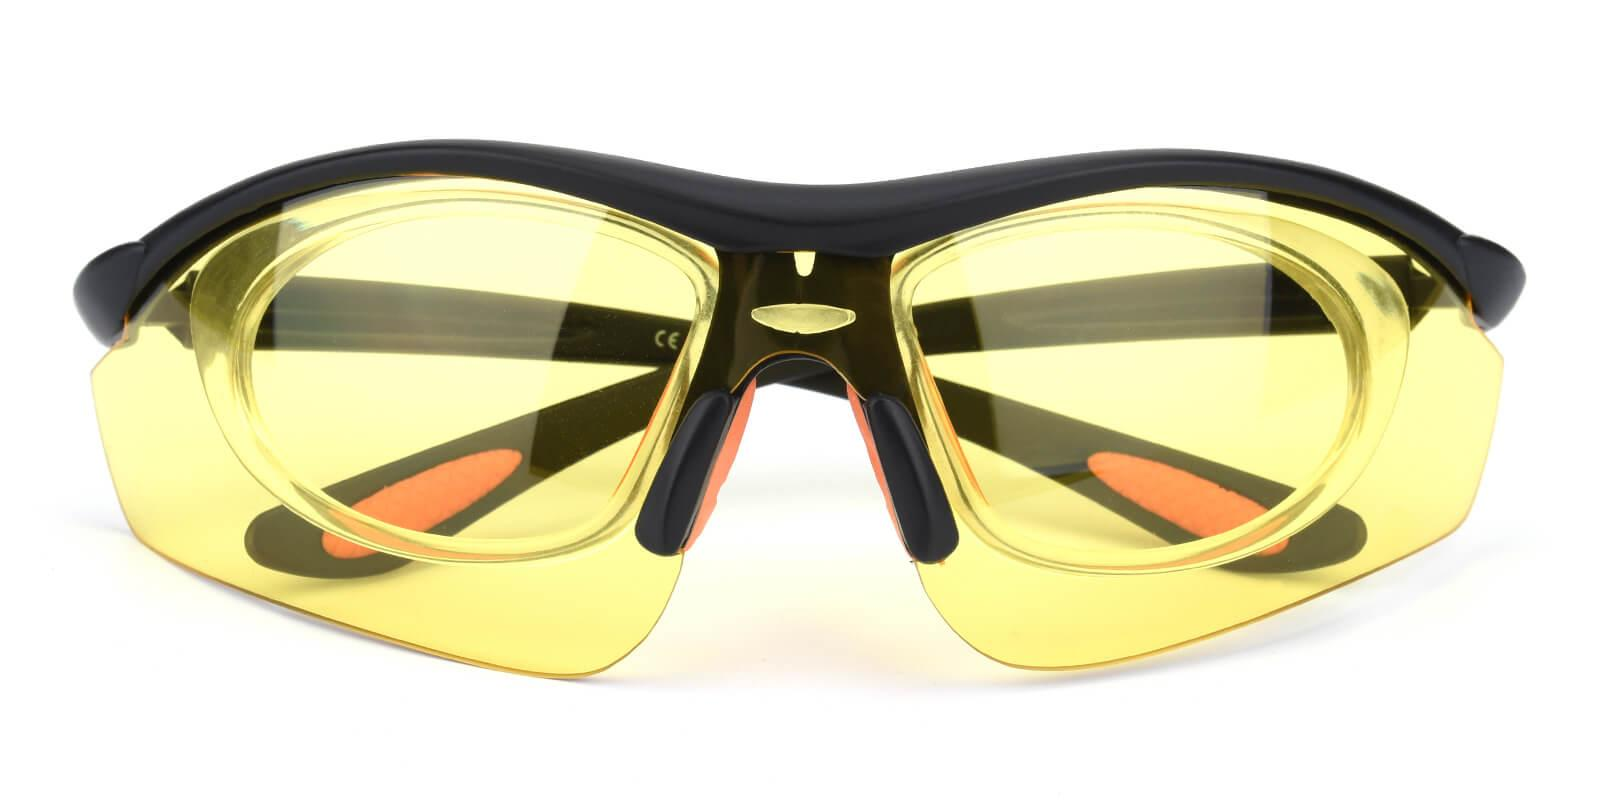 Preavey-Yellow-Square-Plastic-SportsGlasses-detail